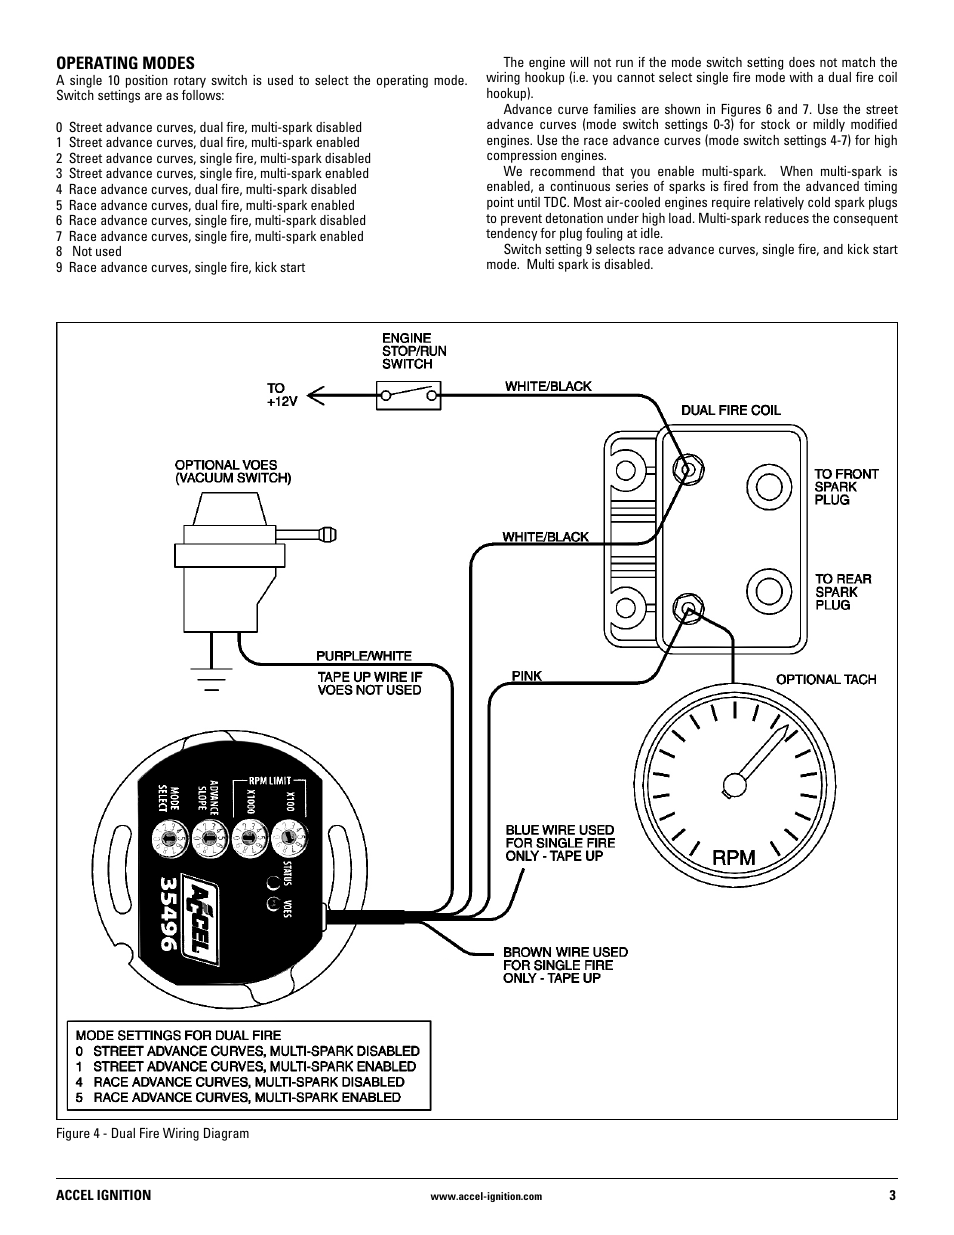 mallory ignition accel ignition 35496 page3?resize\\\\\\\\\\\\\\\=665%2C861 mallory unilite wiring diagram tamahuproject org mallory unilite ignition wiring diagram at metegol.co